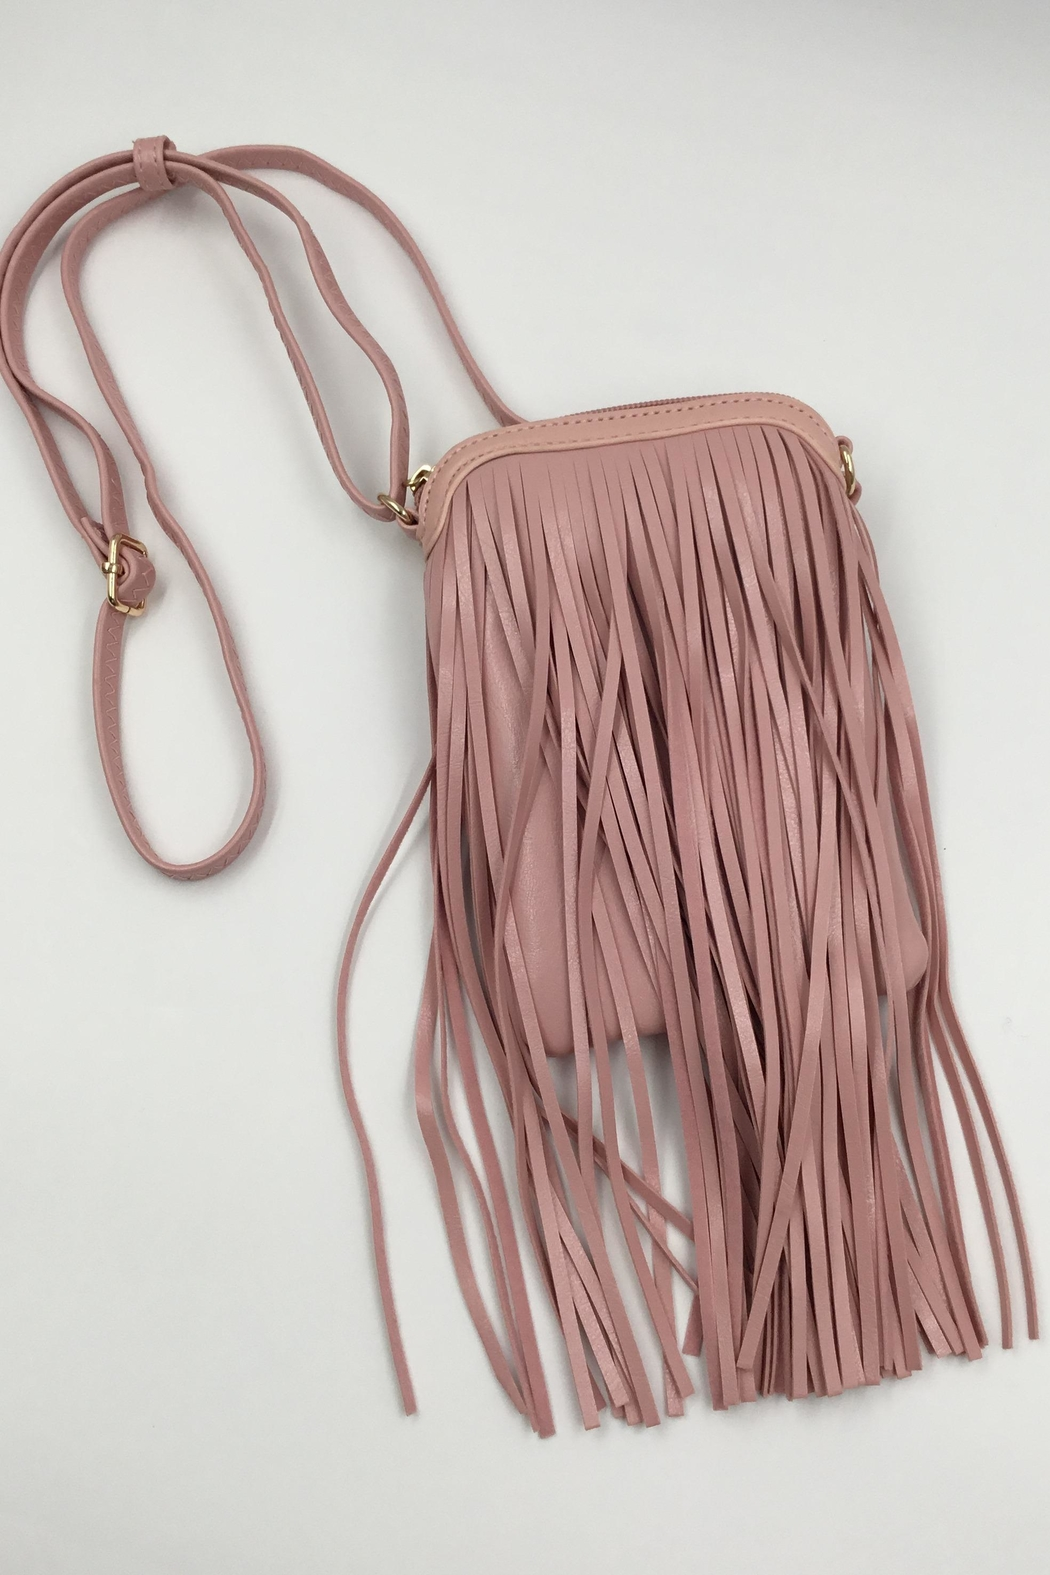 Sapphire Sky private label Vegan Leather Pink Bag - Main Image